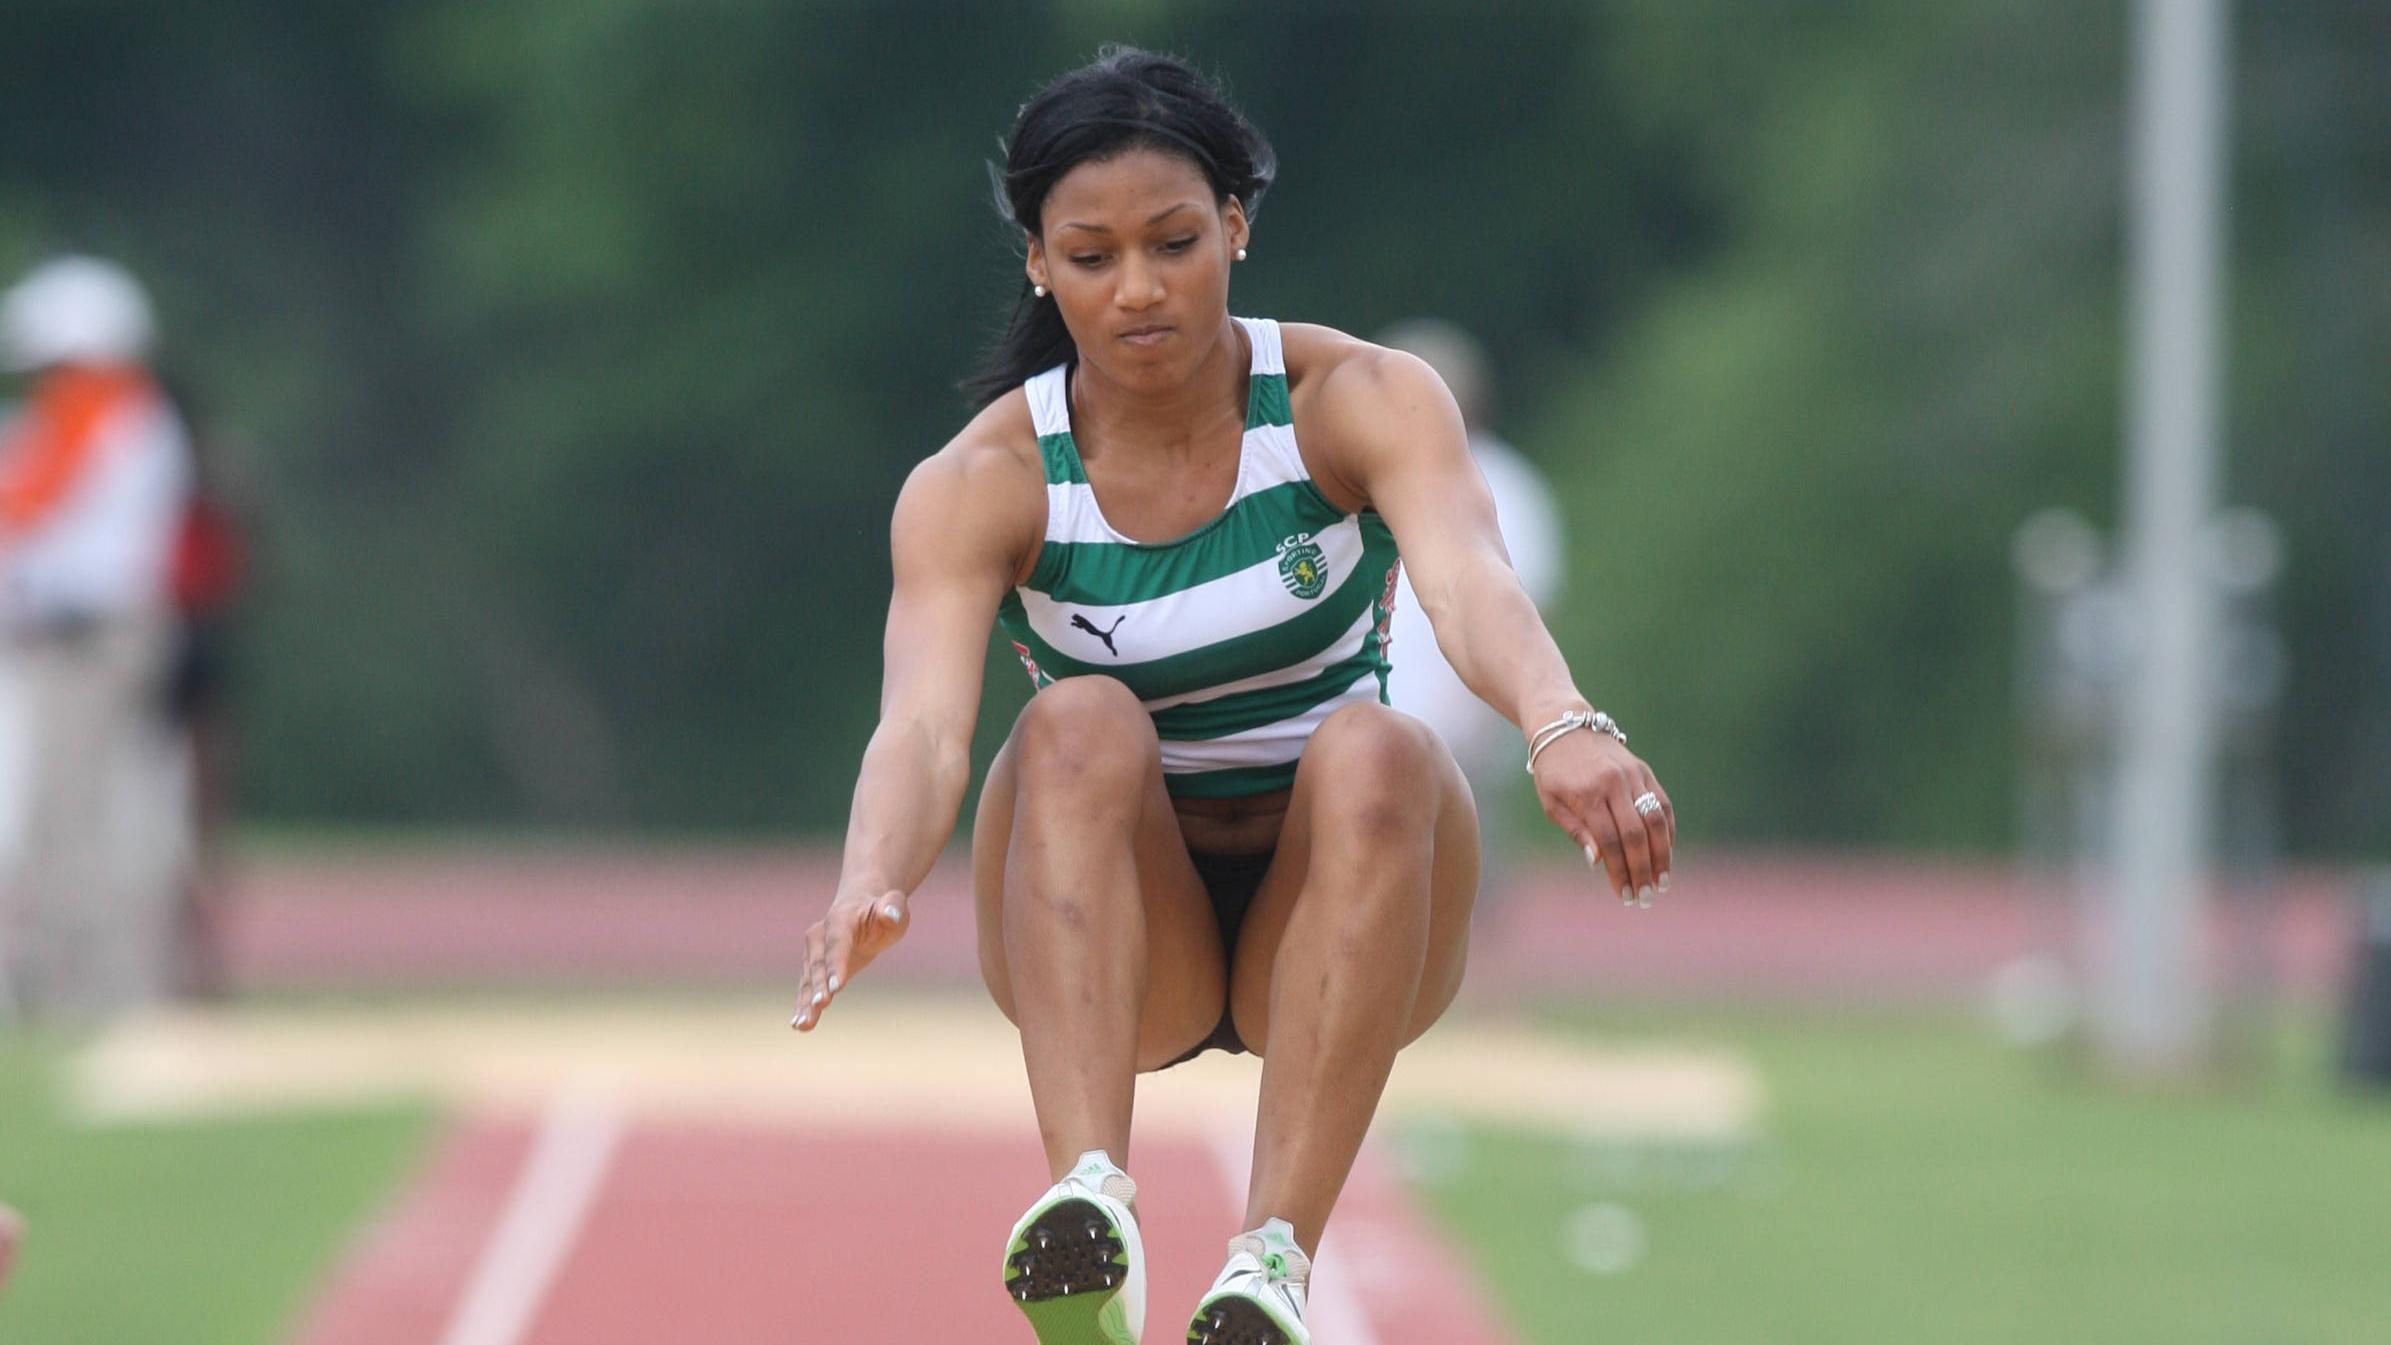 Five Athletes with Clemson Ties to Compete in Track & Field Portion of London Olympics